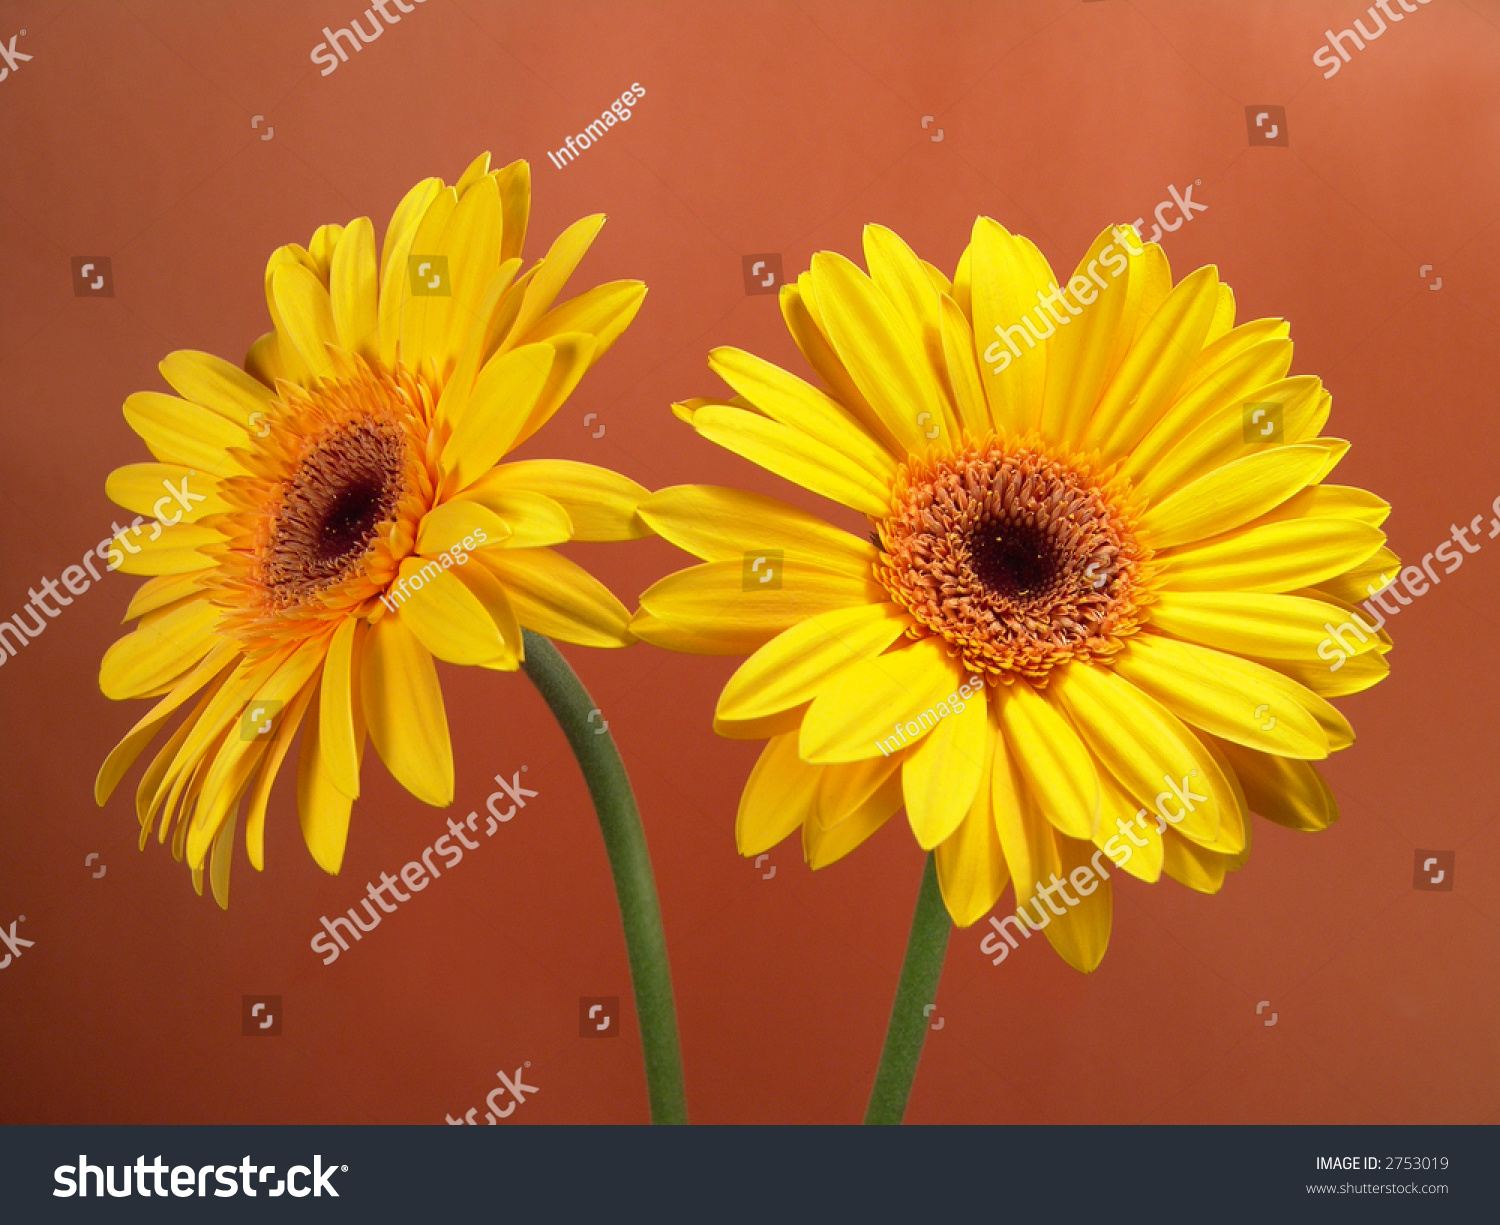 Portrait Of Vibrant Yellow Gerbera Daisy Flower Heads With A Red